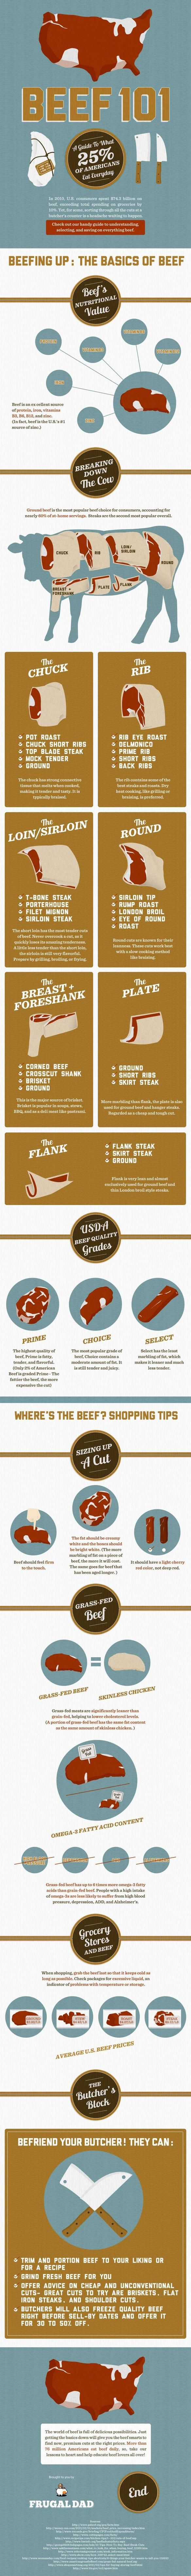 Get to know the different cuts of beef (infographic)